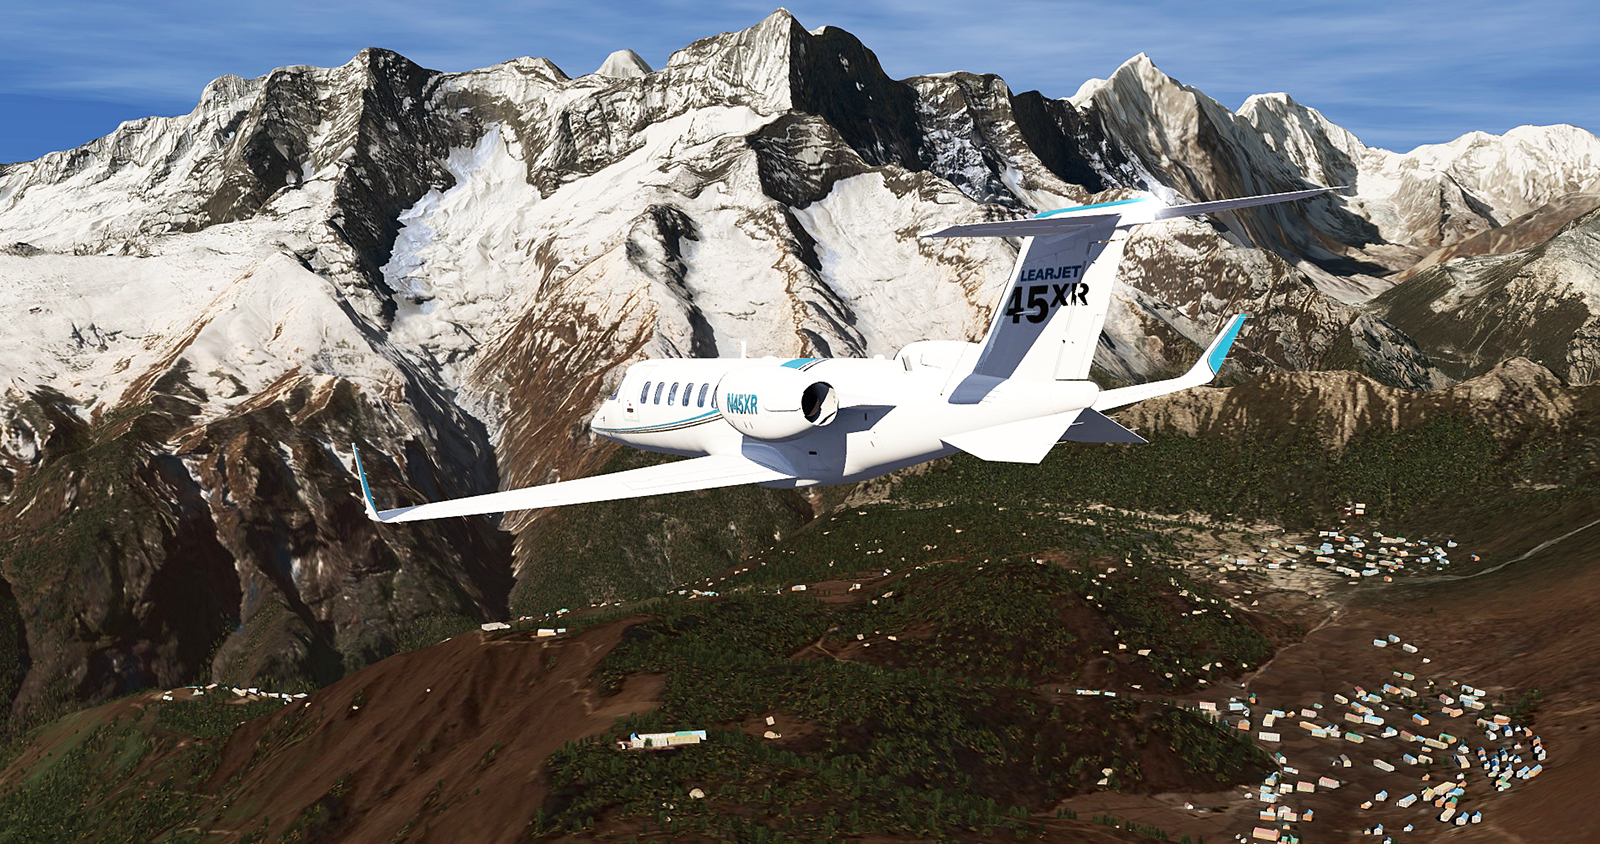 Above Himalaya+Lear 45XR_4